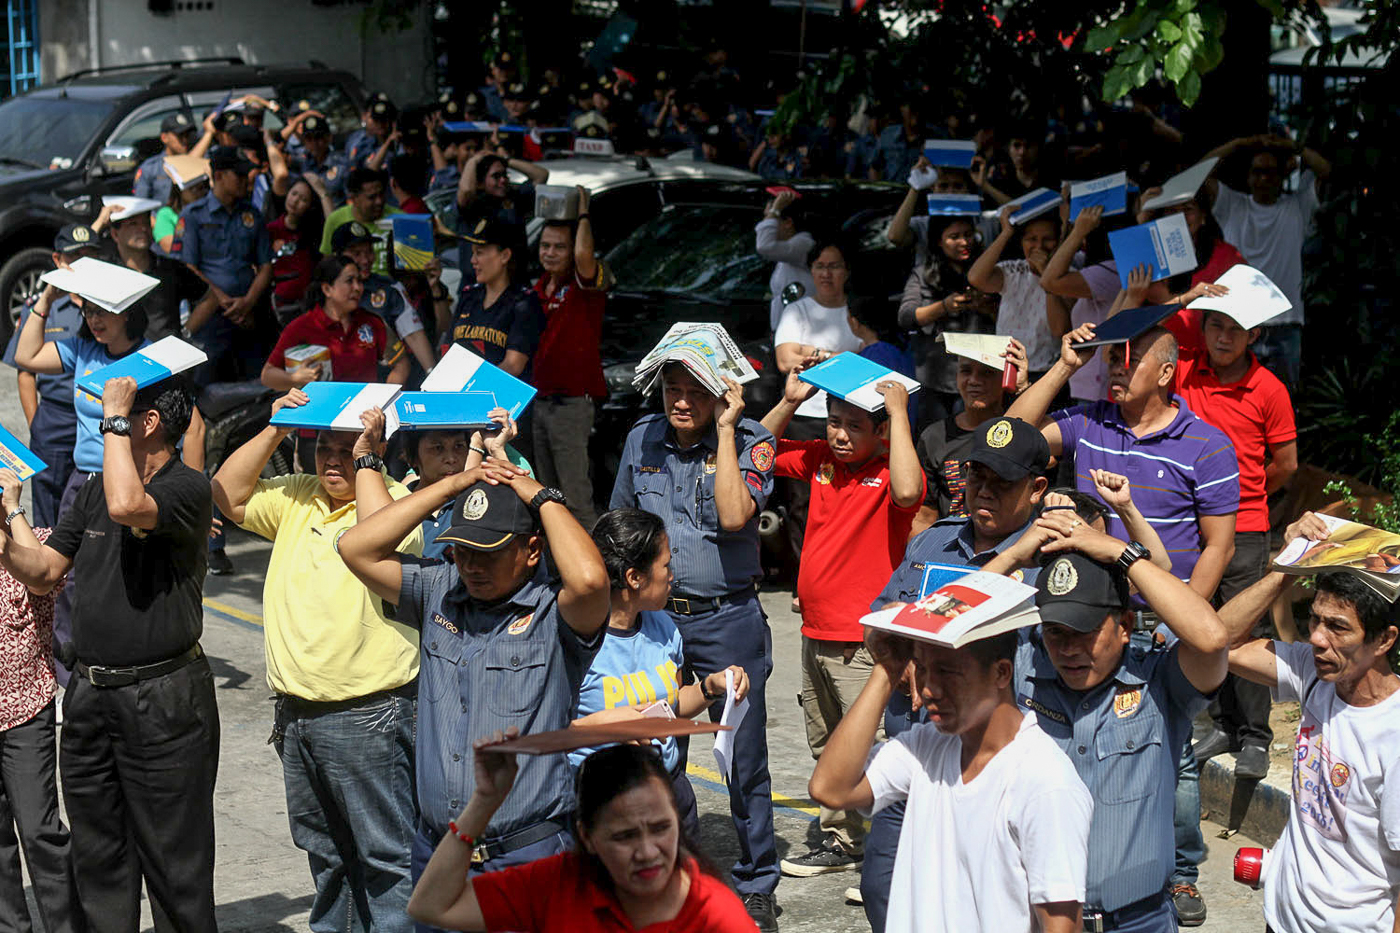 SAFE ZONE. Uniformed and non-uniformed personnel evacuate at the Manila Police District headquarters on June 29, 2017. Photo by Inoue Jaena/Rappler